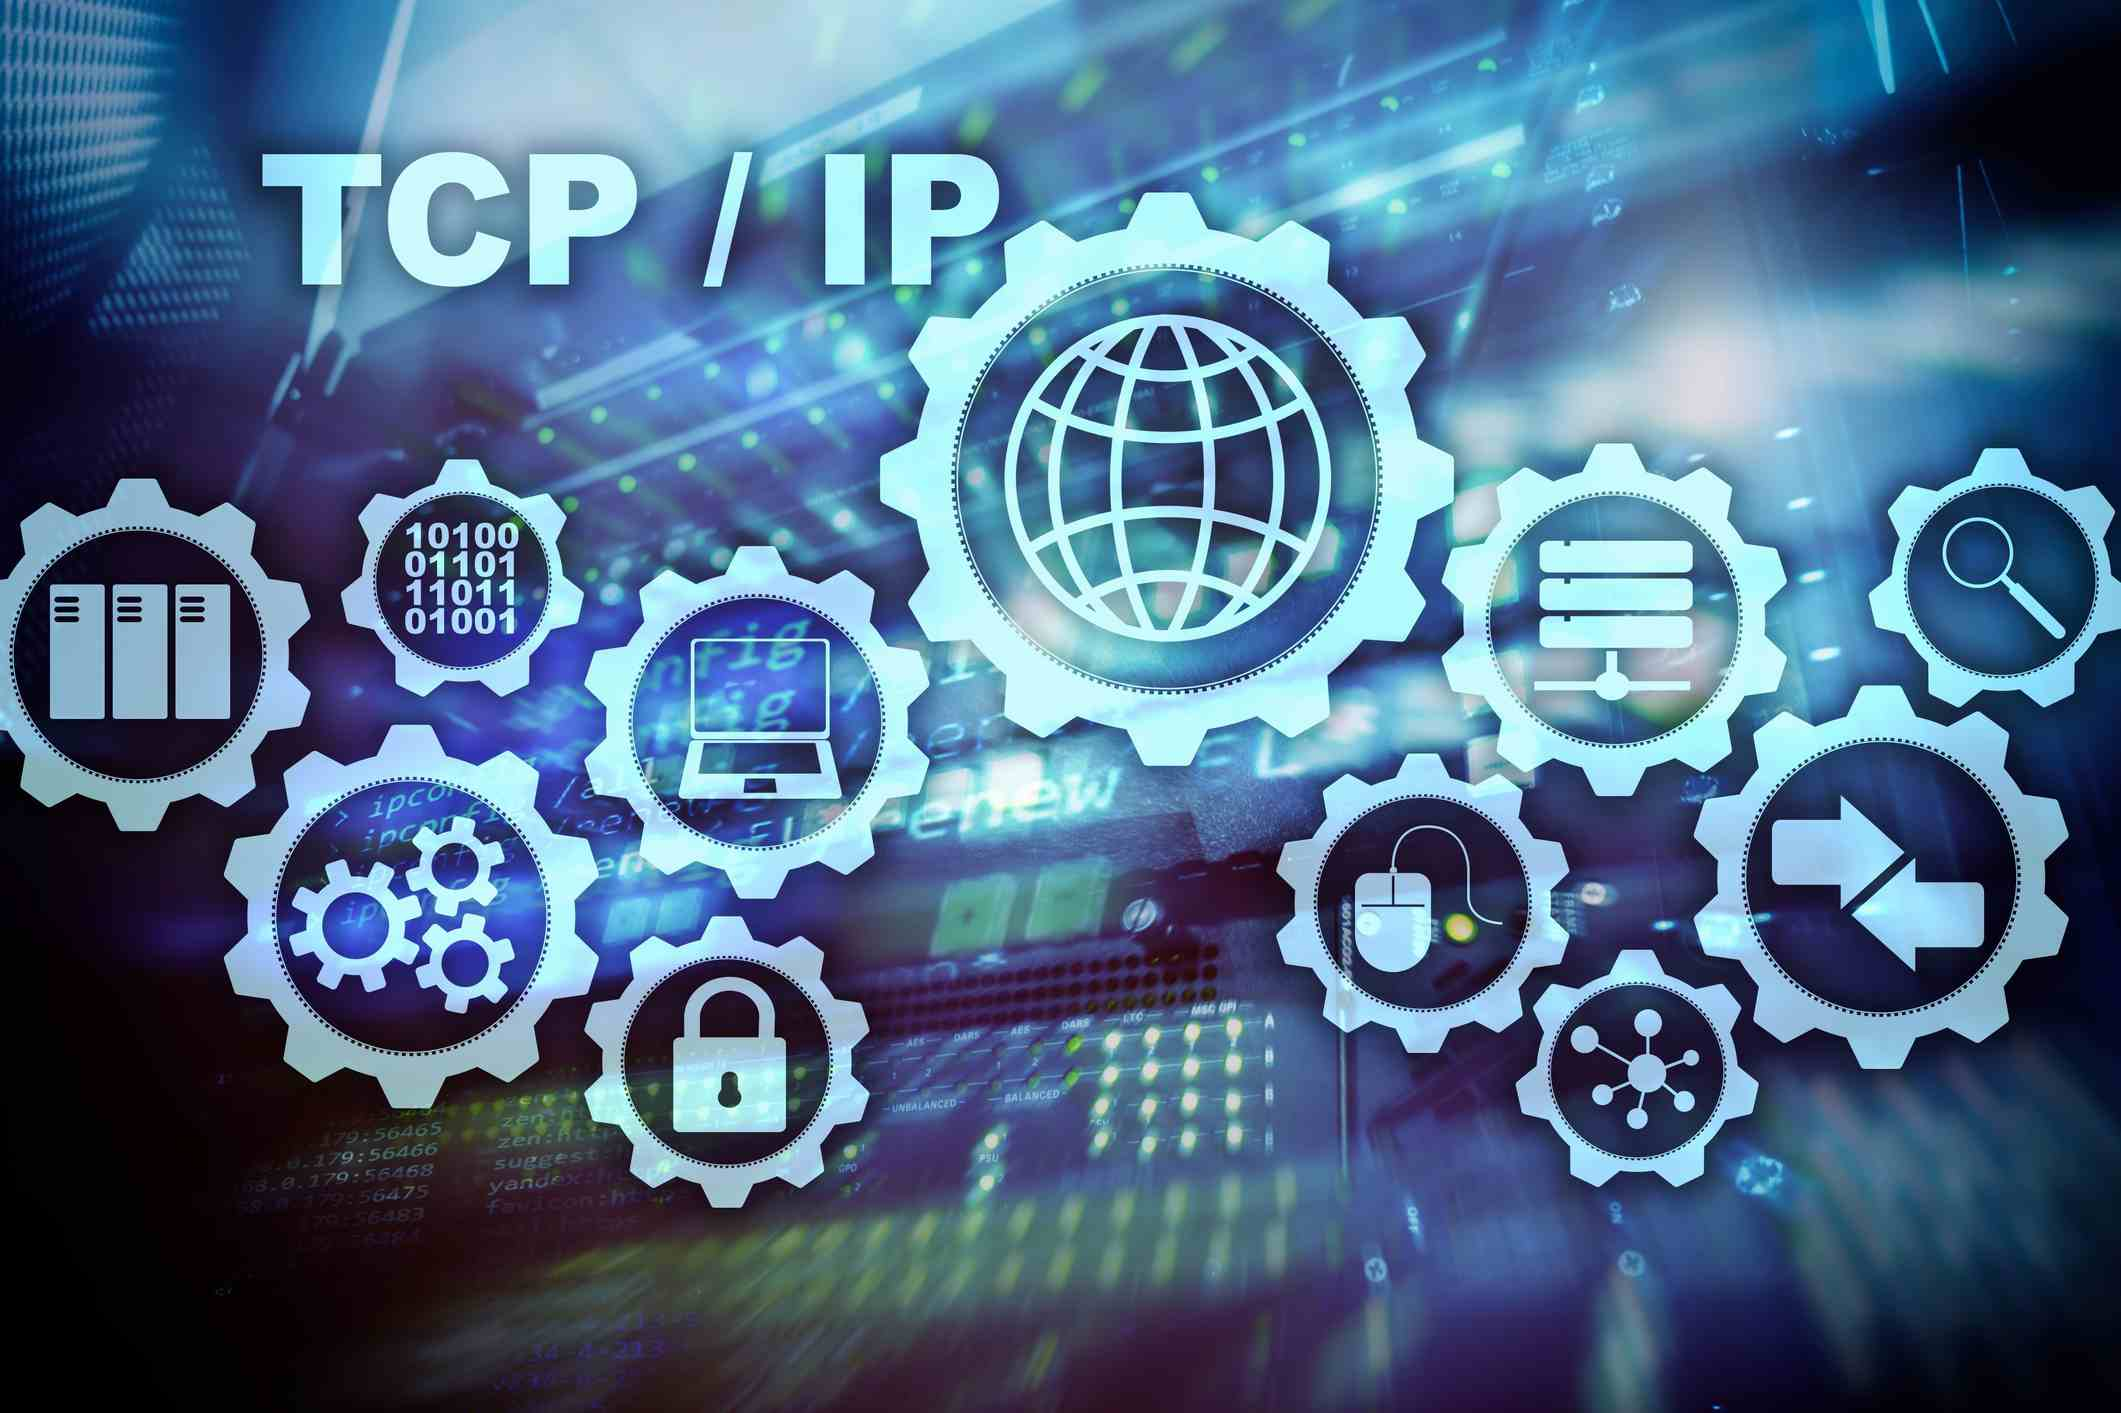 The computer networking terms TCP/IP